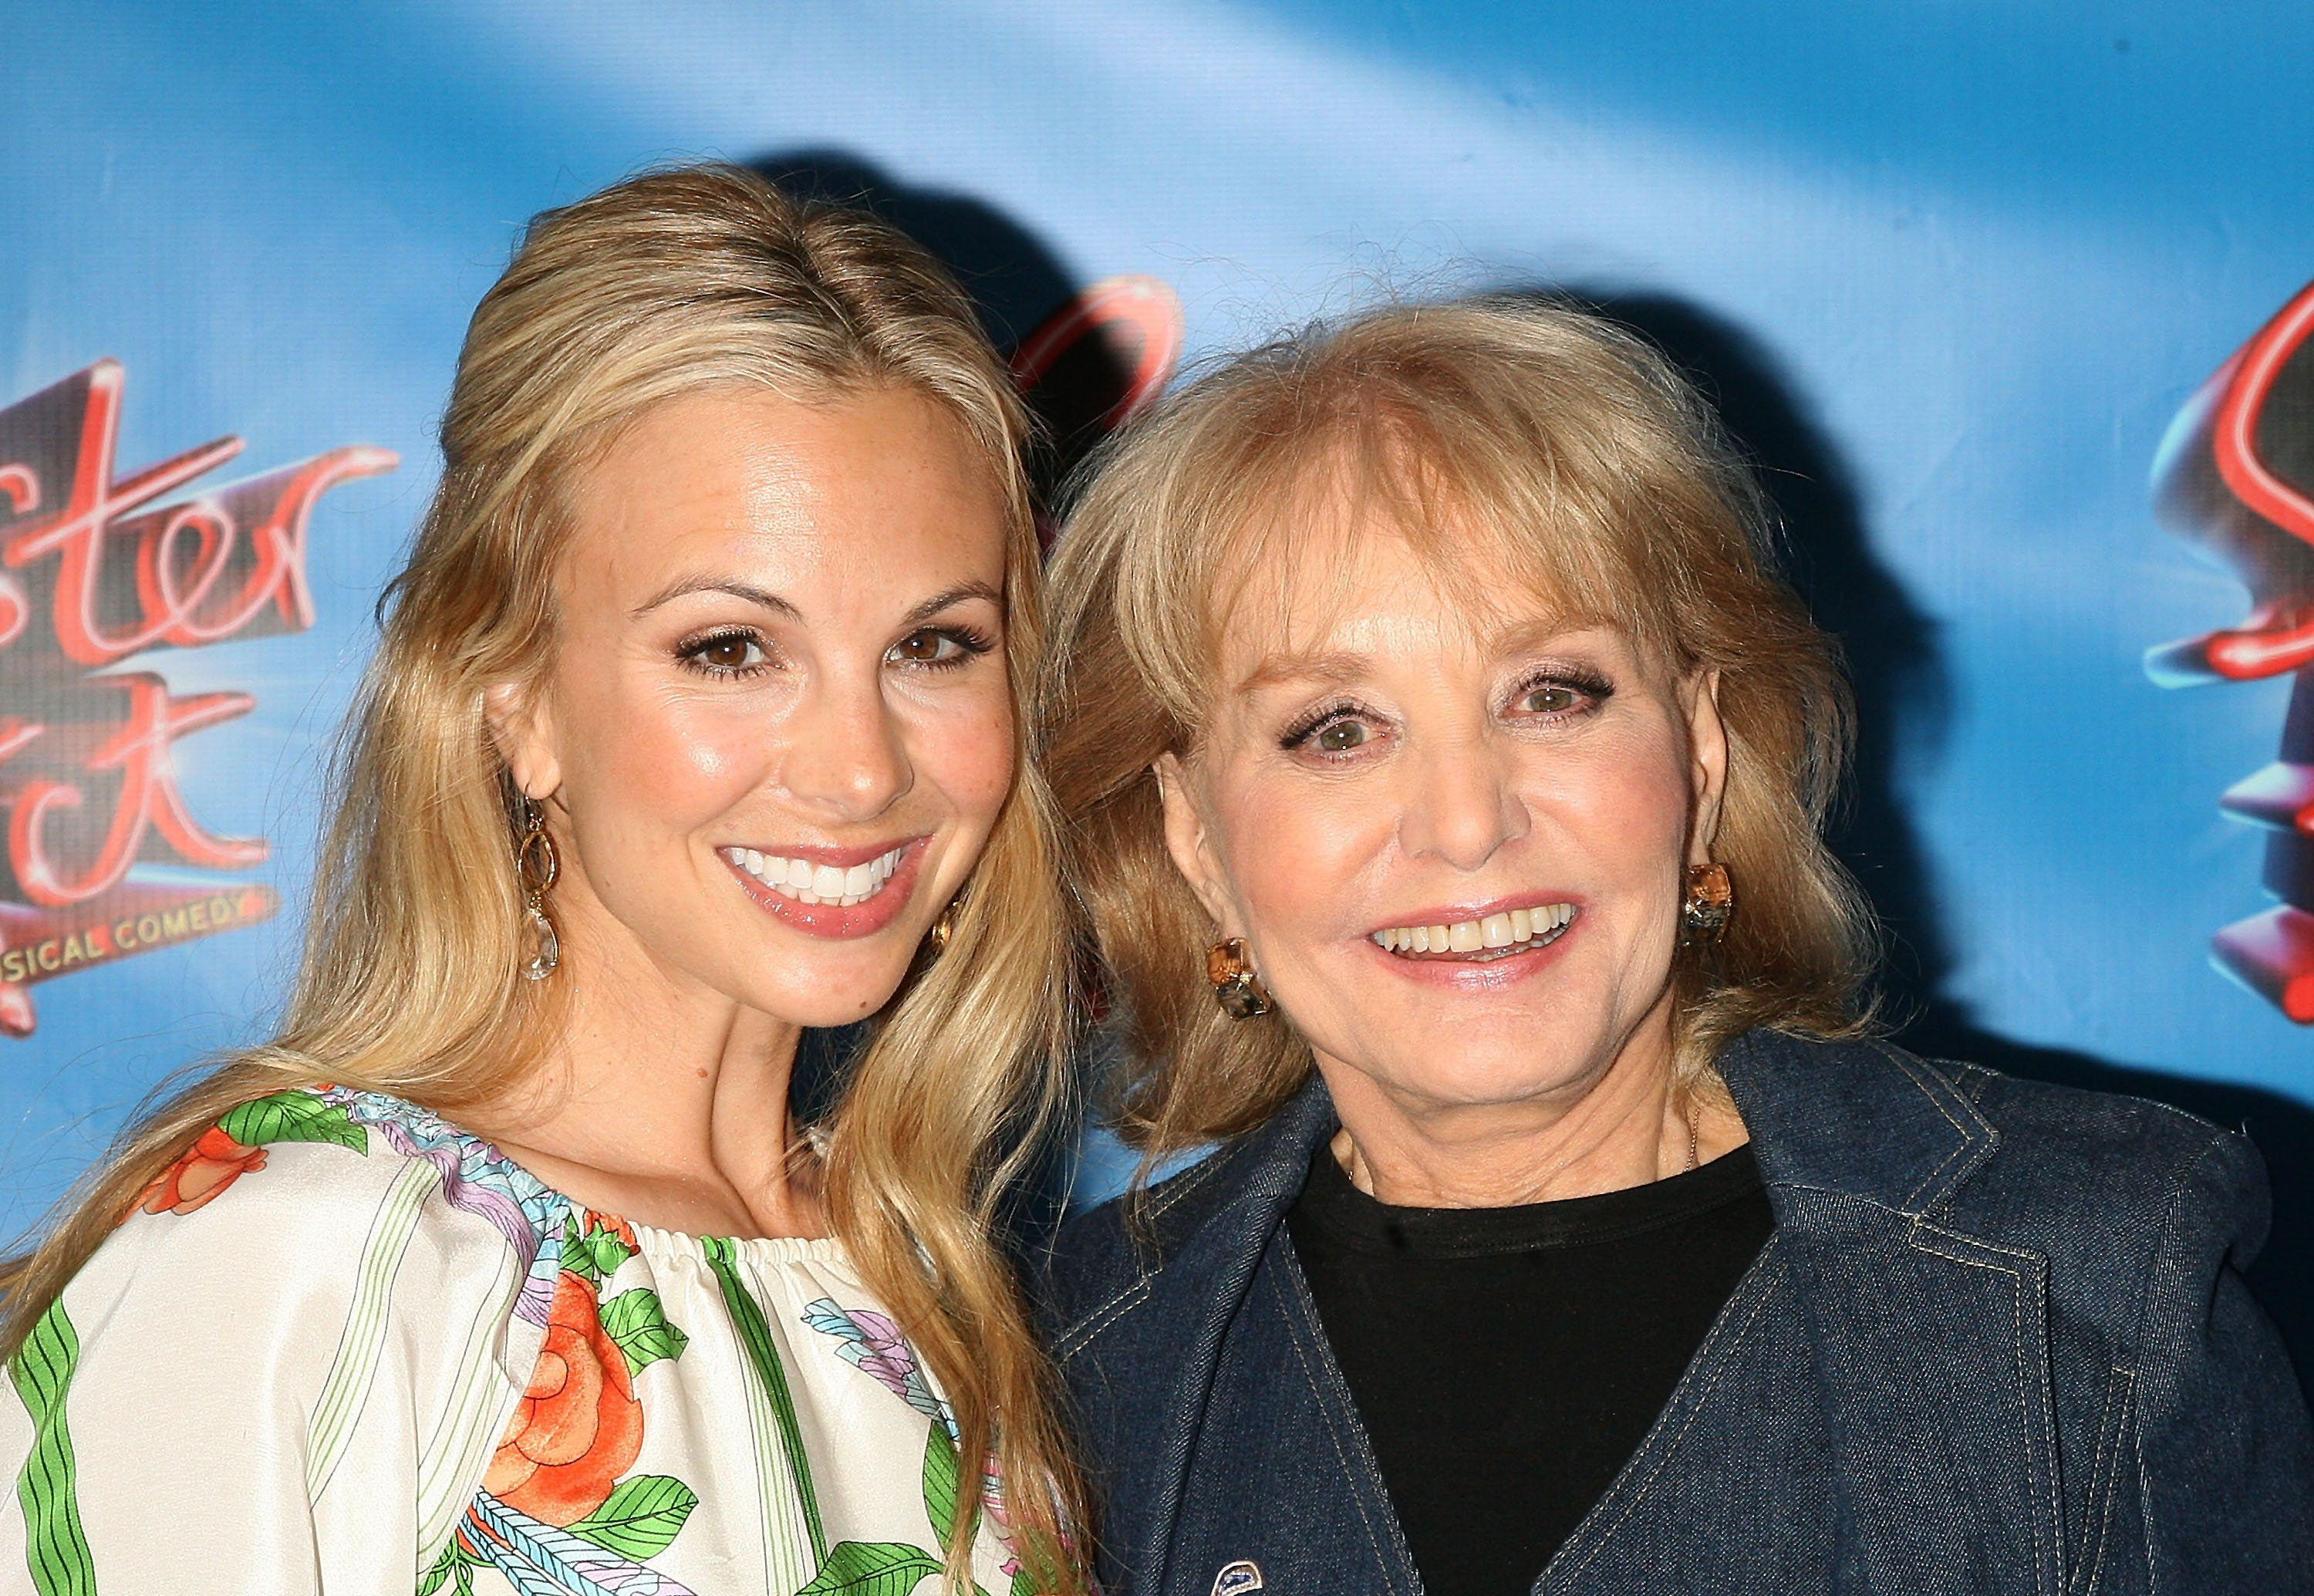 TV personalities Elisabeth Hasselbeck and Barbara Walters attend the Broadway opening night of 'Sister Act' at the Broadway Theatre on April 20, 2011 in New York City. (Photo by Jim Spellman/WireImage)